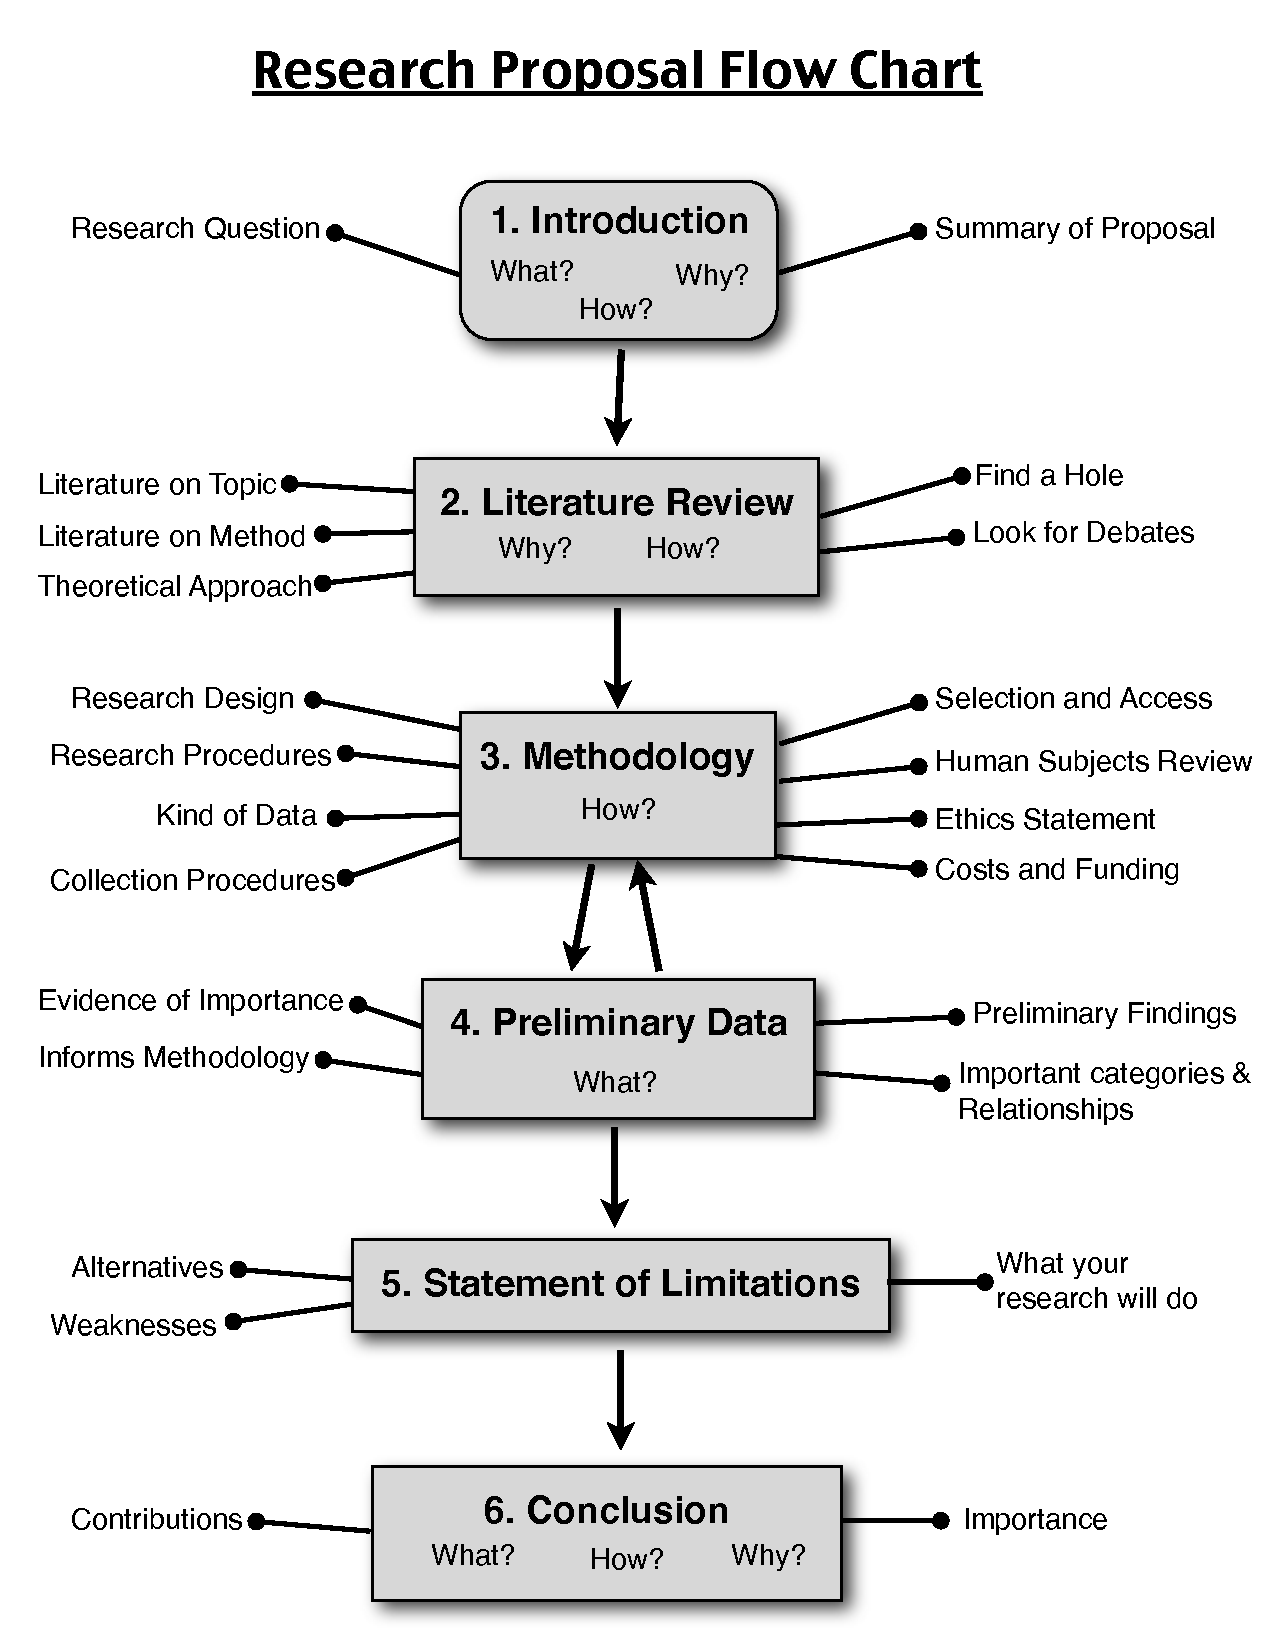 Reasonable Research Methodology Flow Chart Sample Research Methodology  Flowchart Thesis Flow Ch… | Scientific Writing, Writing A Research  Proposal, Research Writing